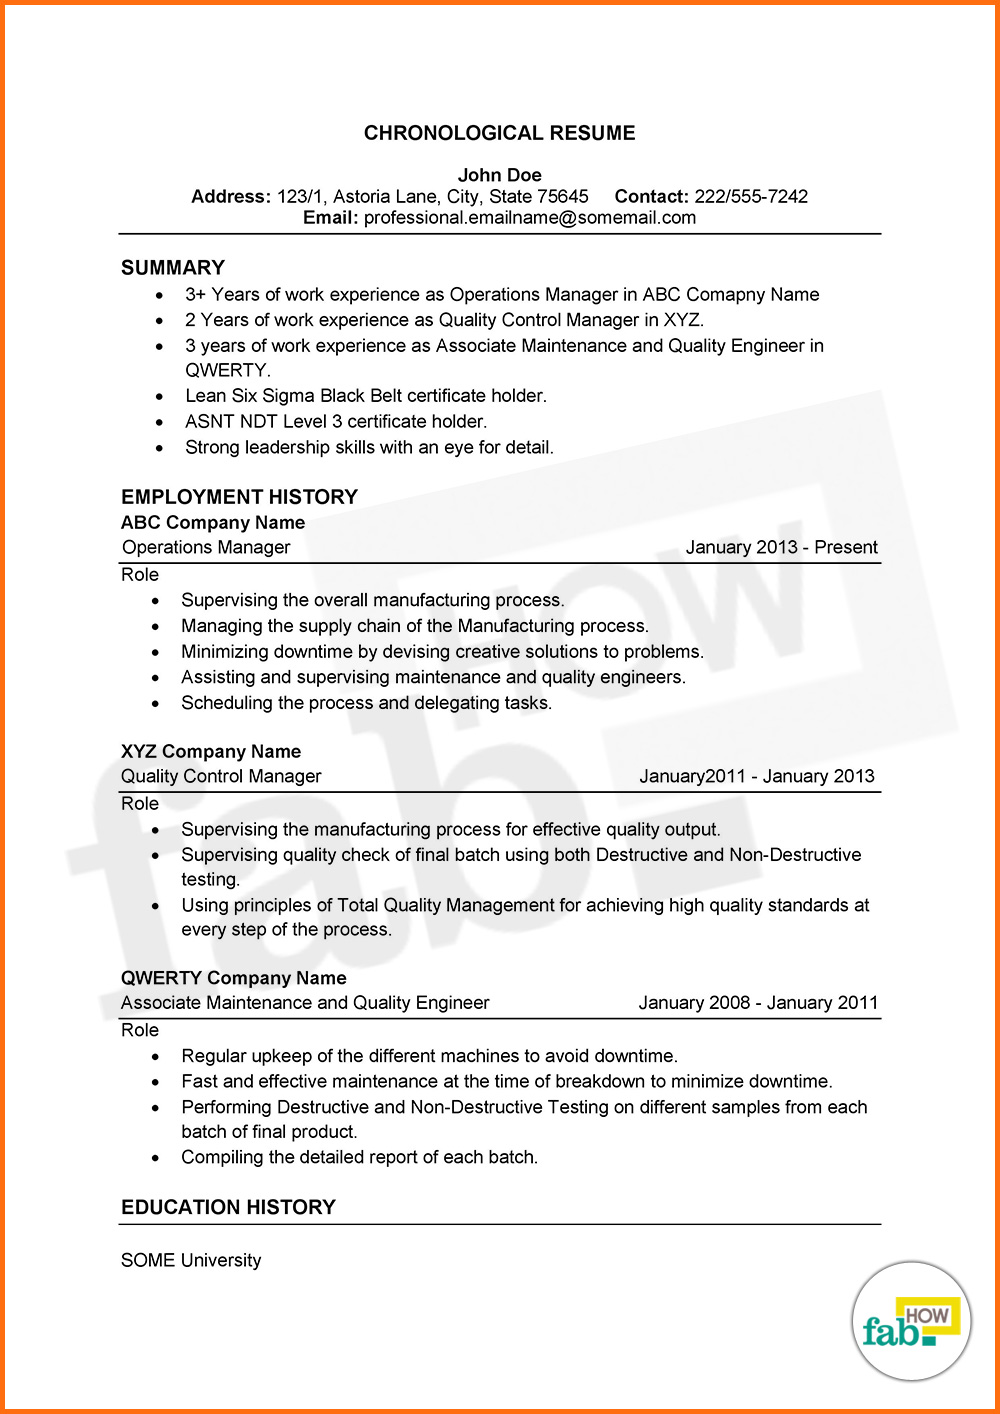 Help with writing objective on resume